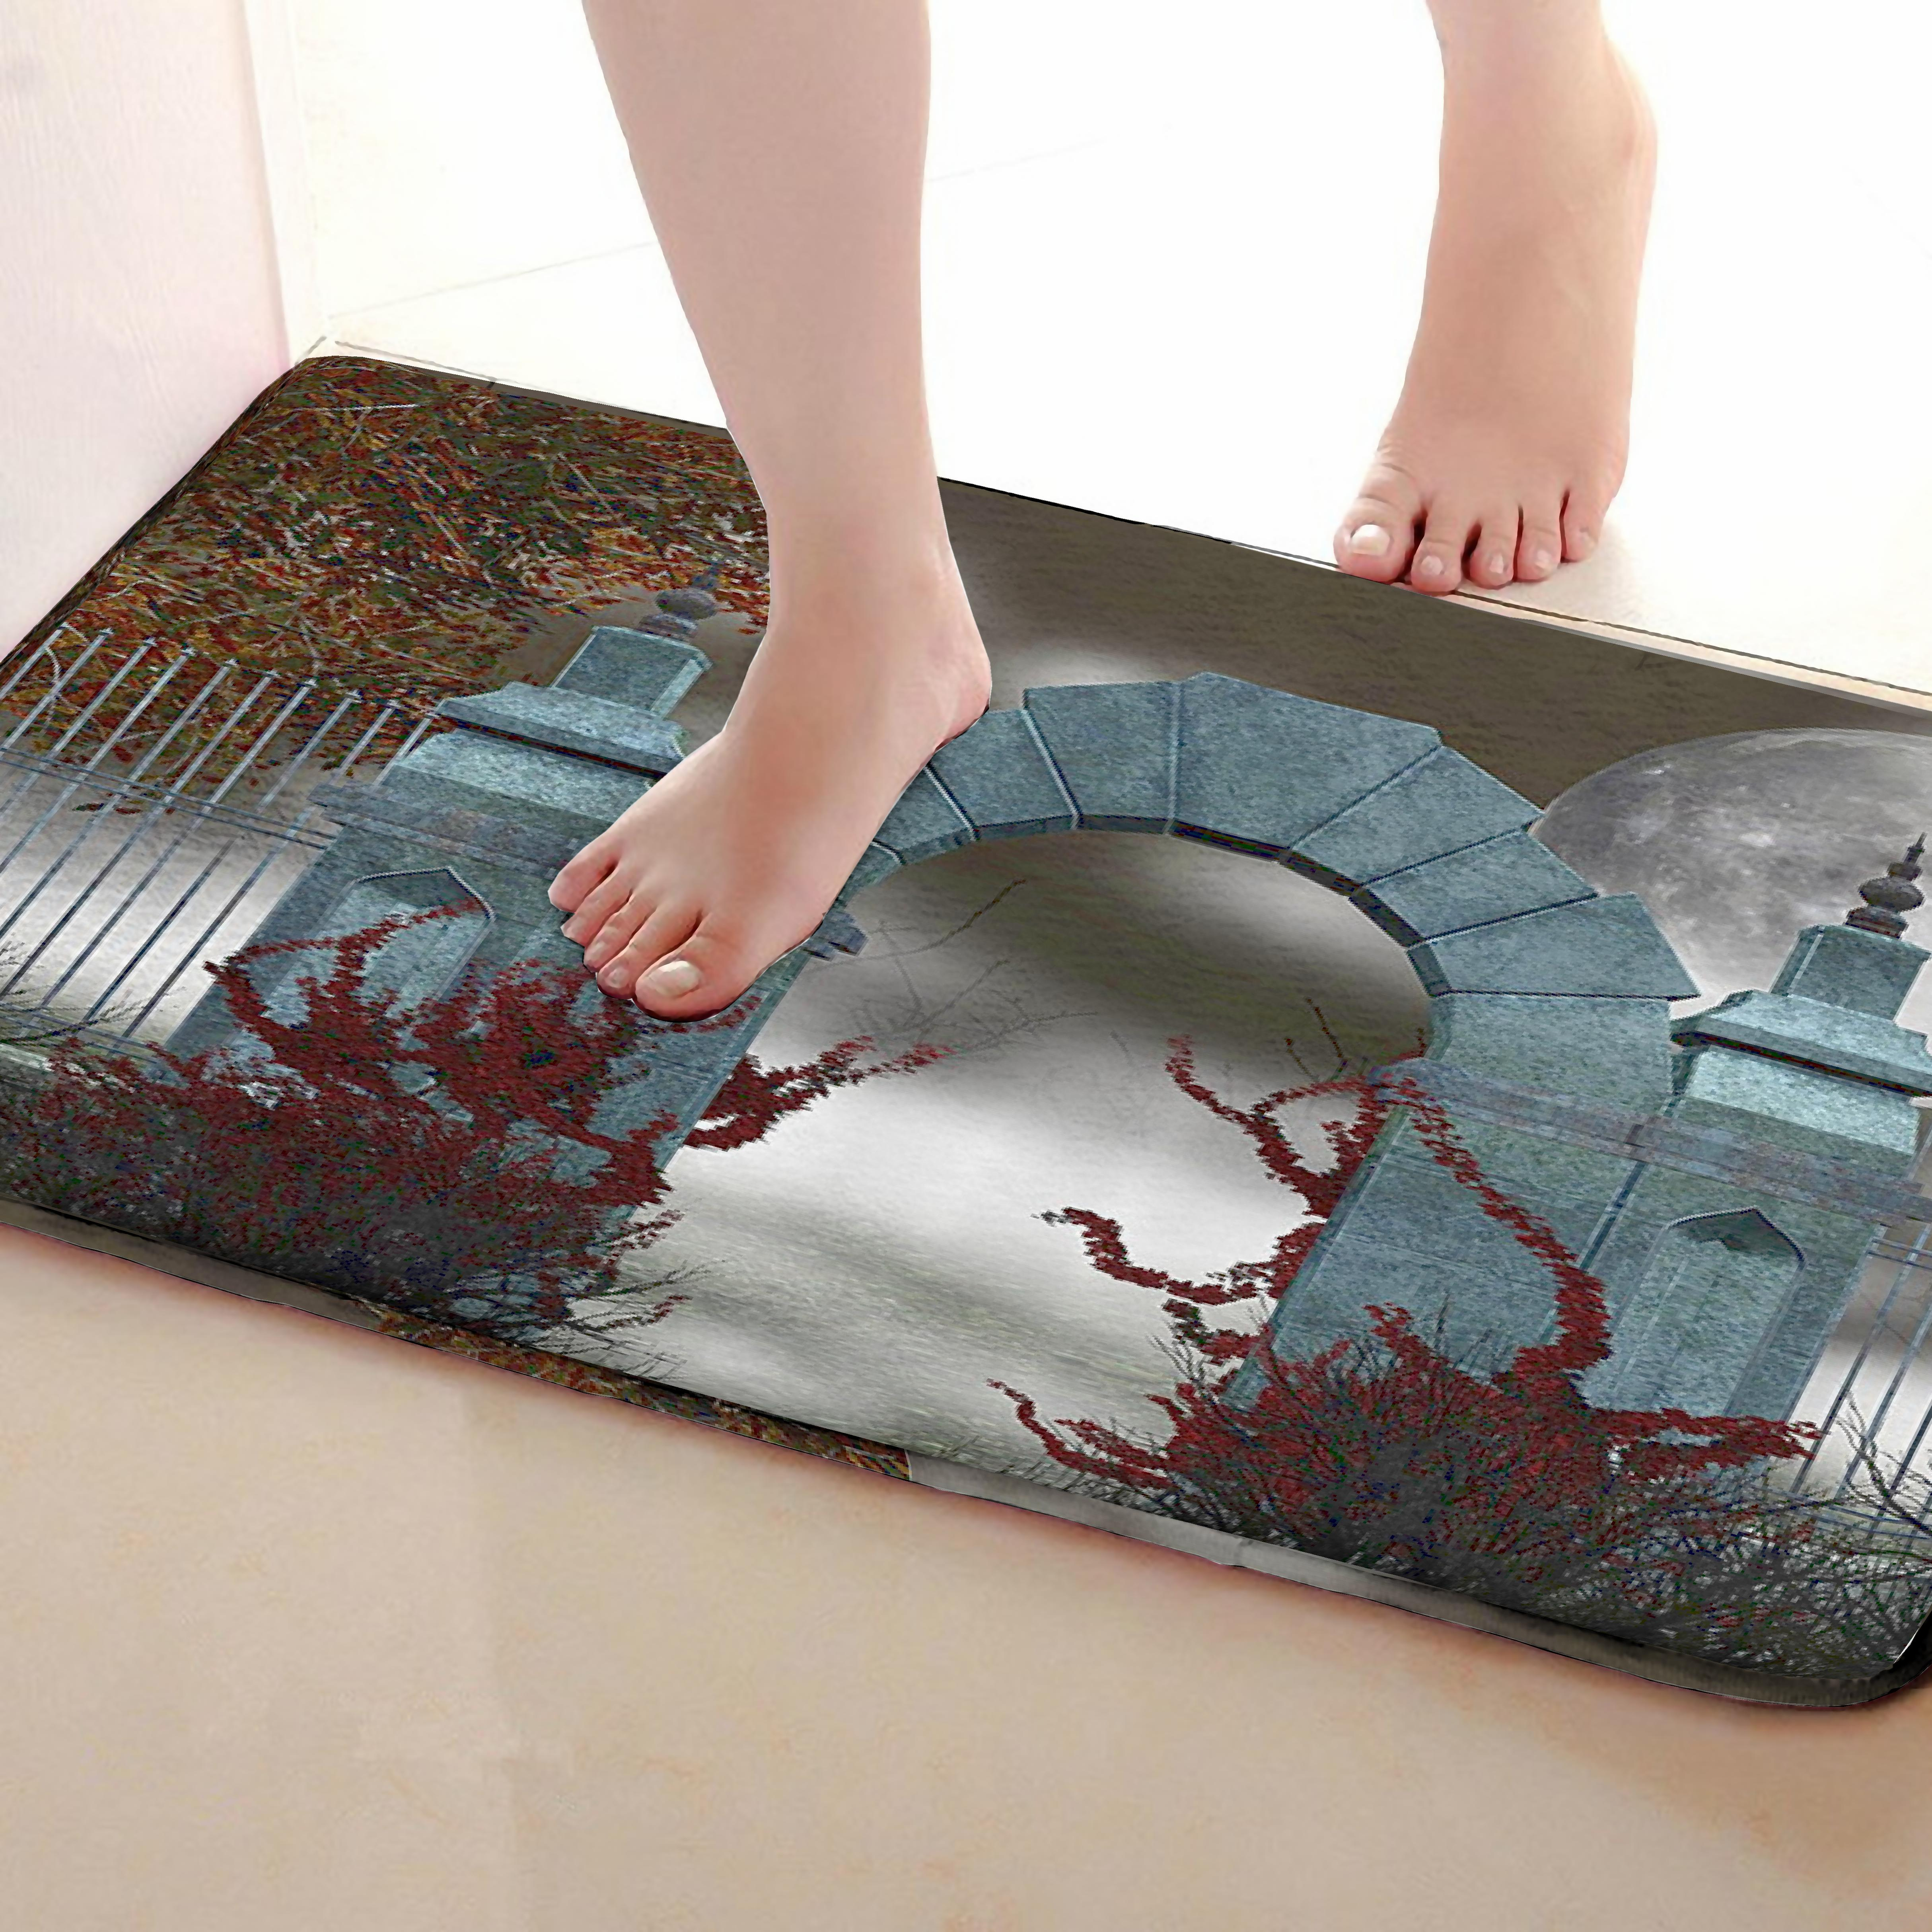 Door Style Bathroom Mat,Funny Anti skid Bath Mat,Shower Curtains Accessories,Matching Your Shower Curtain